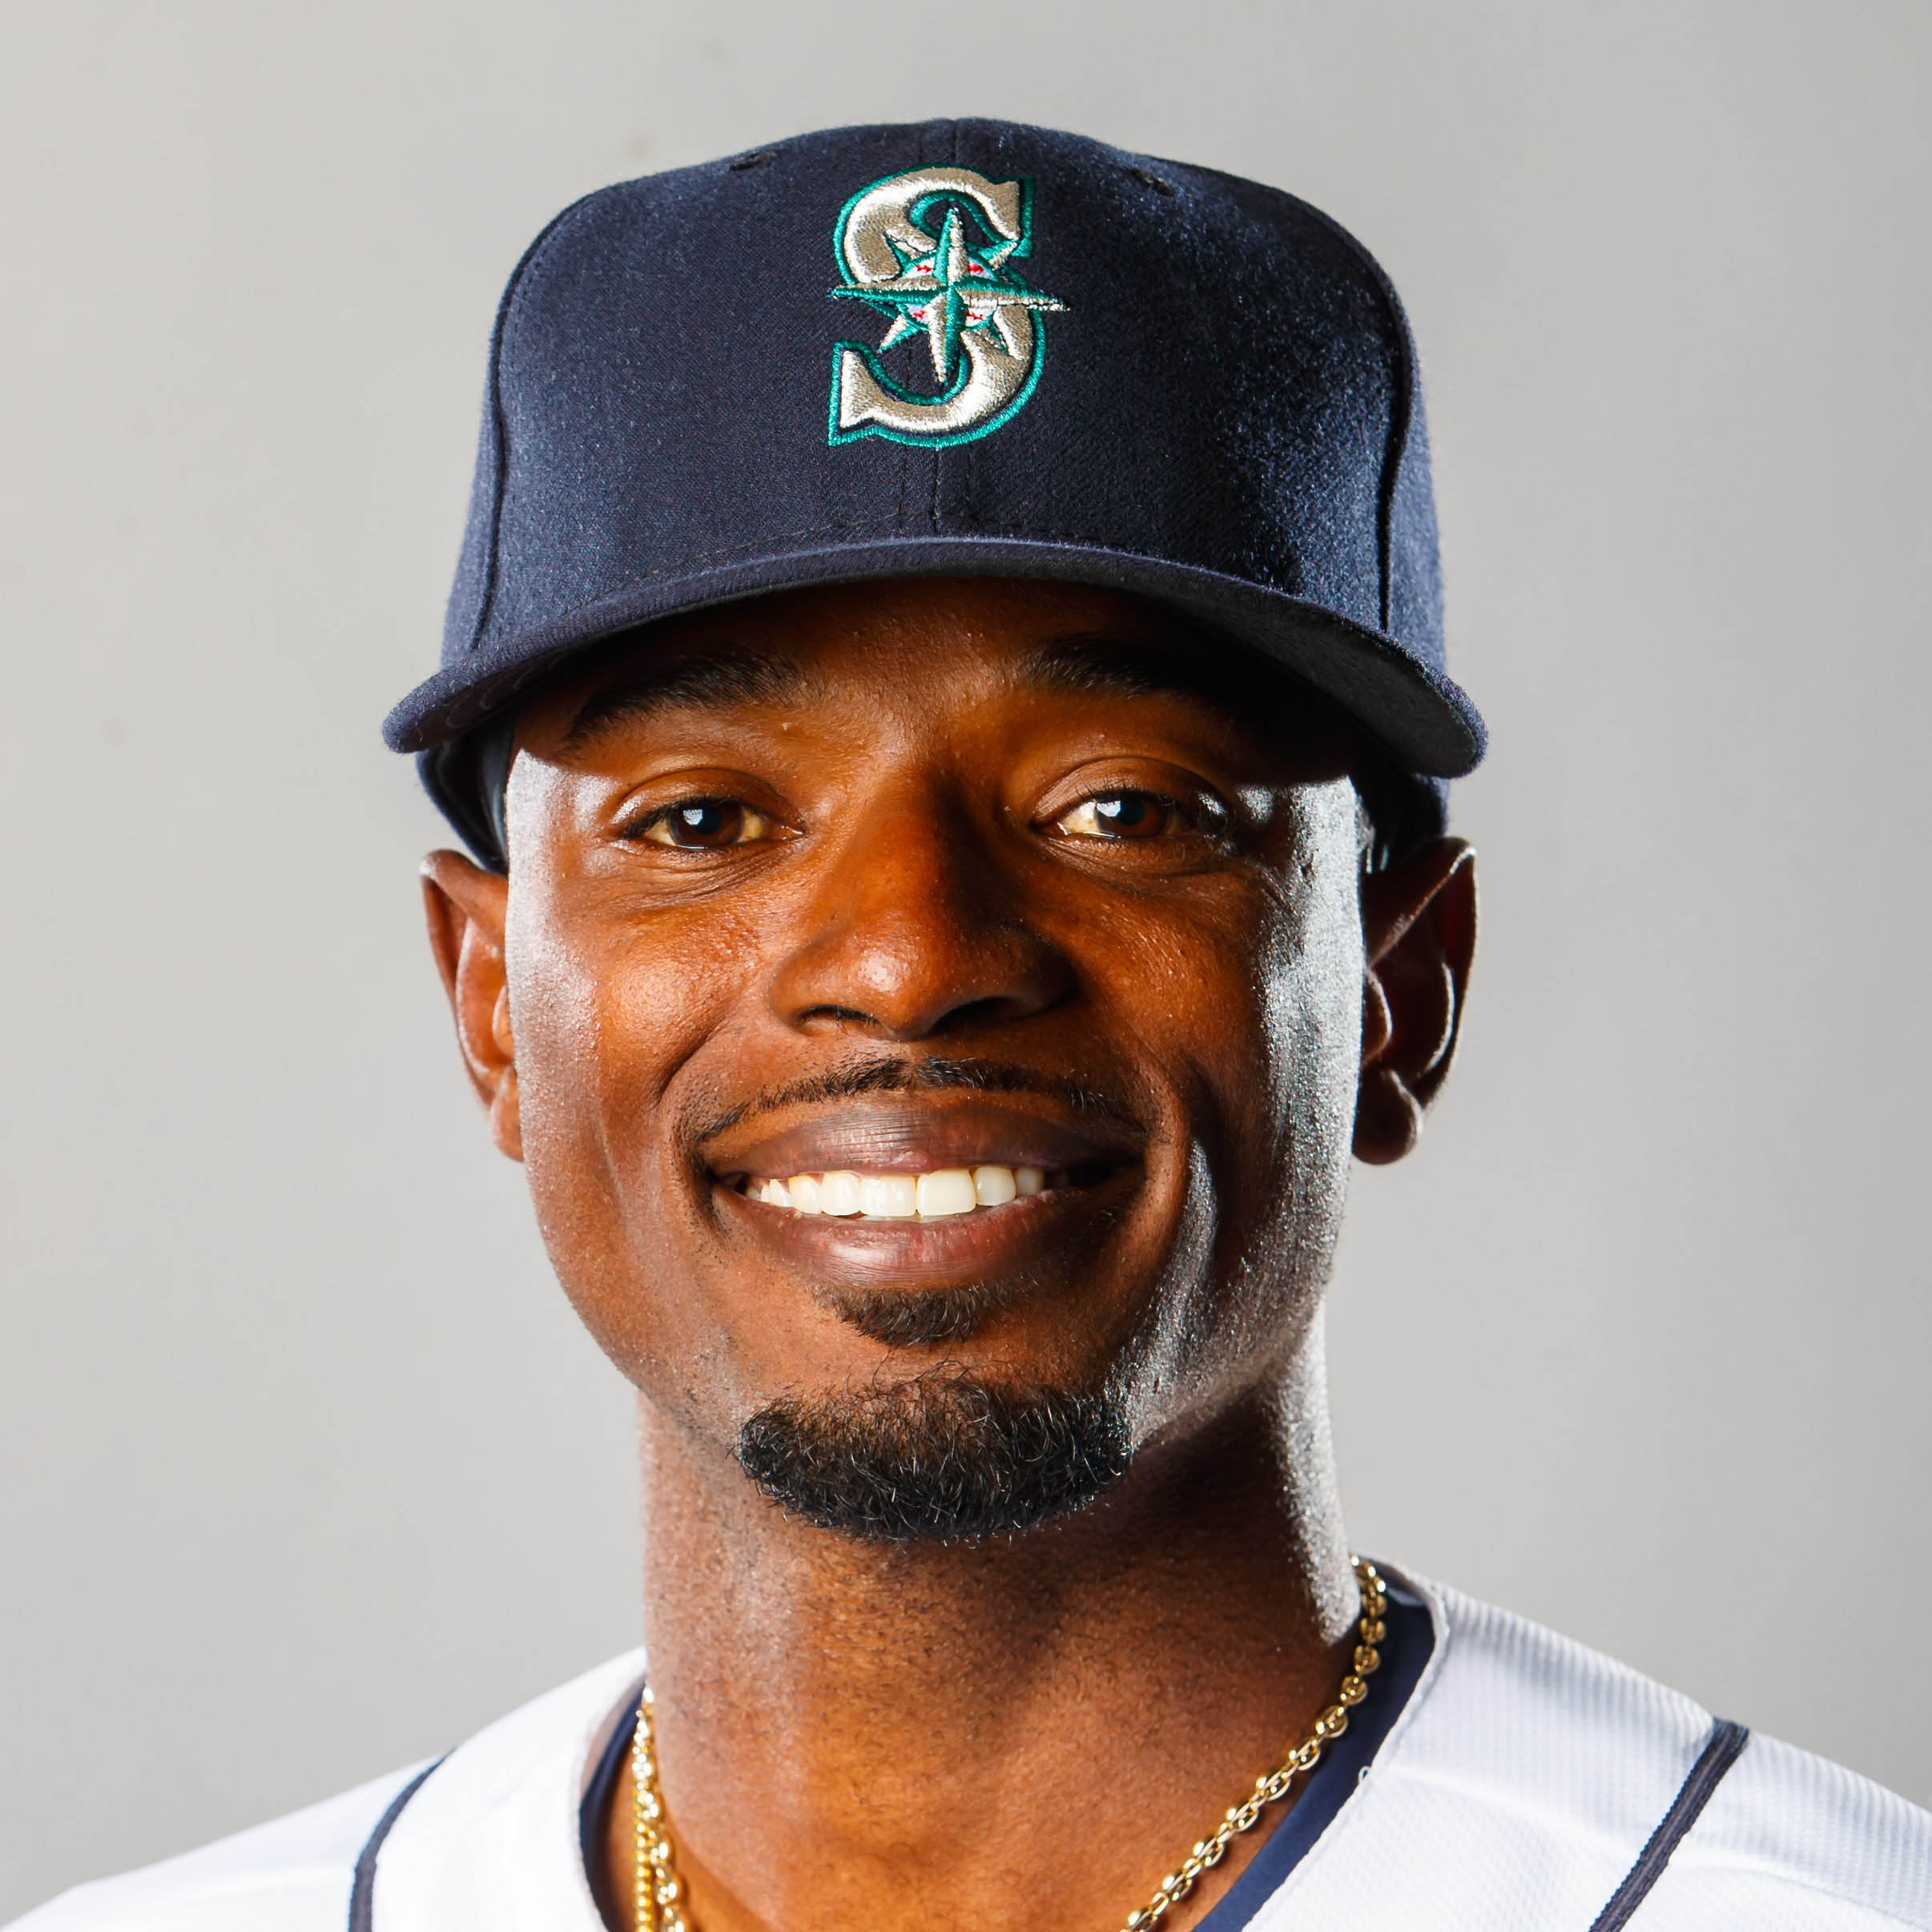 Dee Gordon (L) Headshot